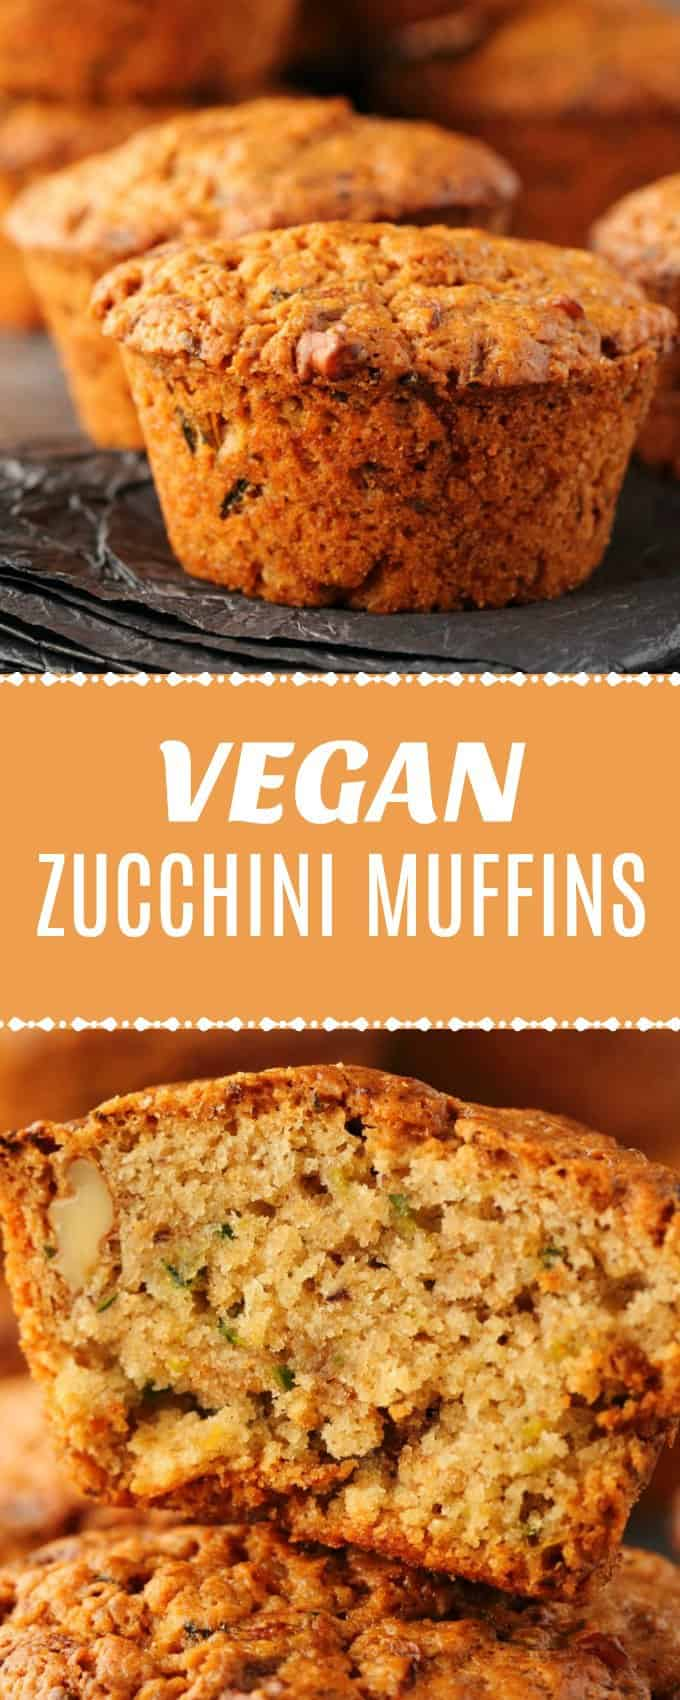 Wholesome and delicious vegan zucchini muffins. These vegan muffins are moist, filling super easy to make, and fabulous either as is or spread with some vegan butter. | lovingitvegan.com